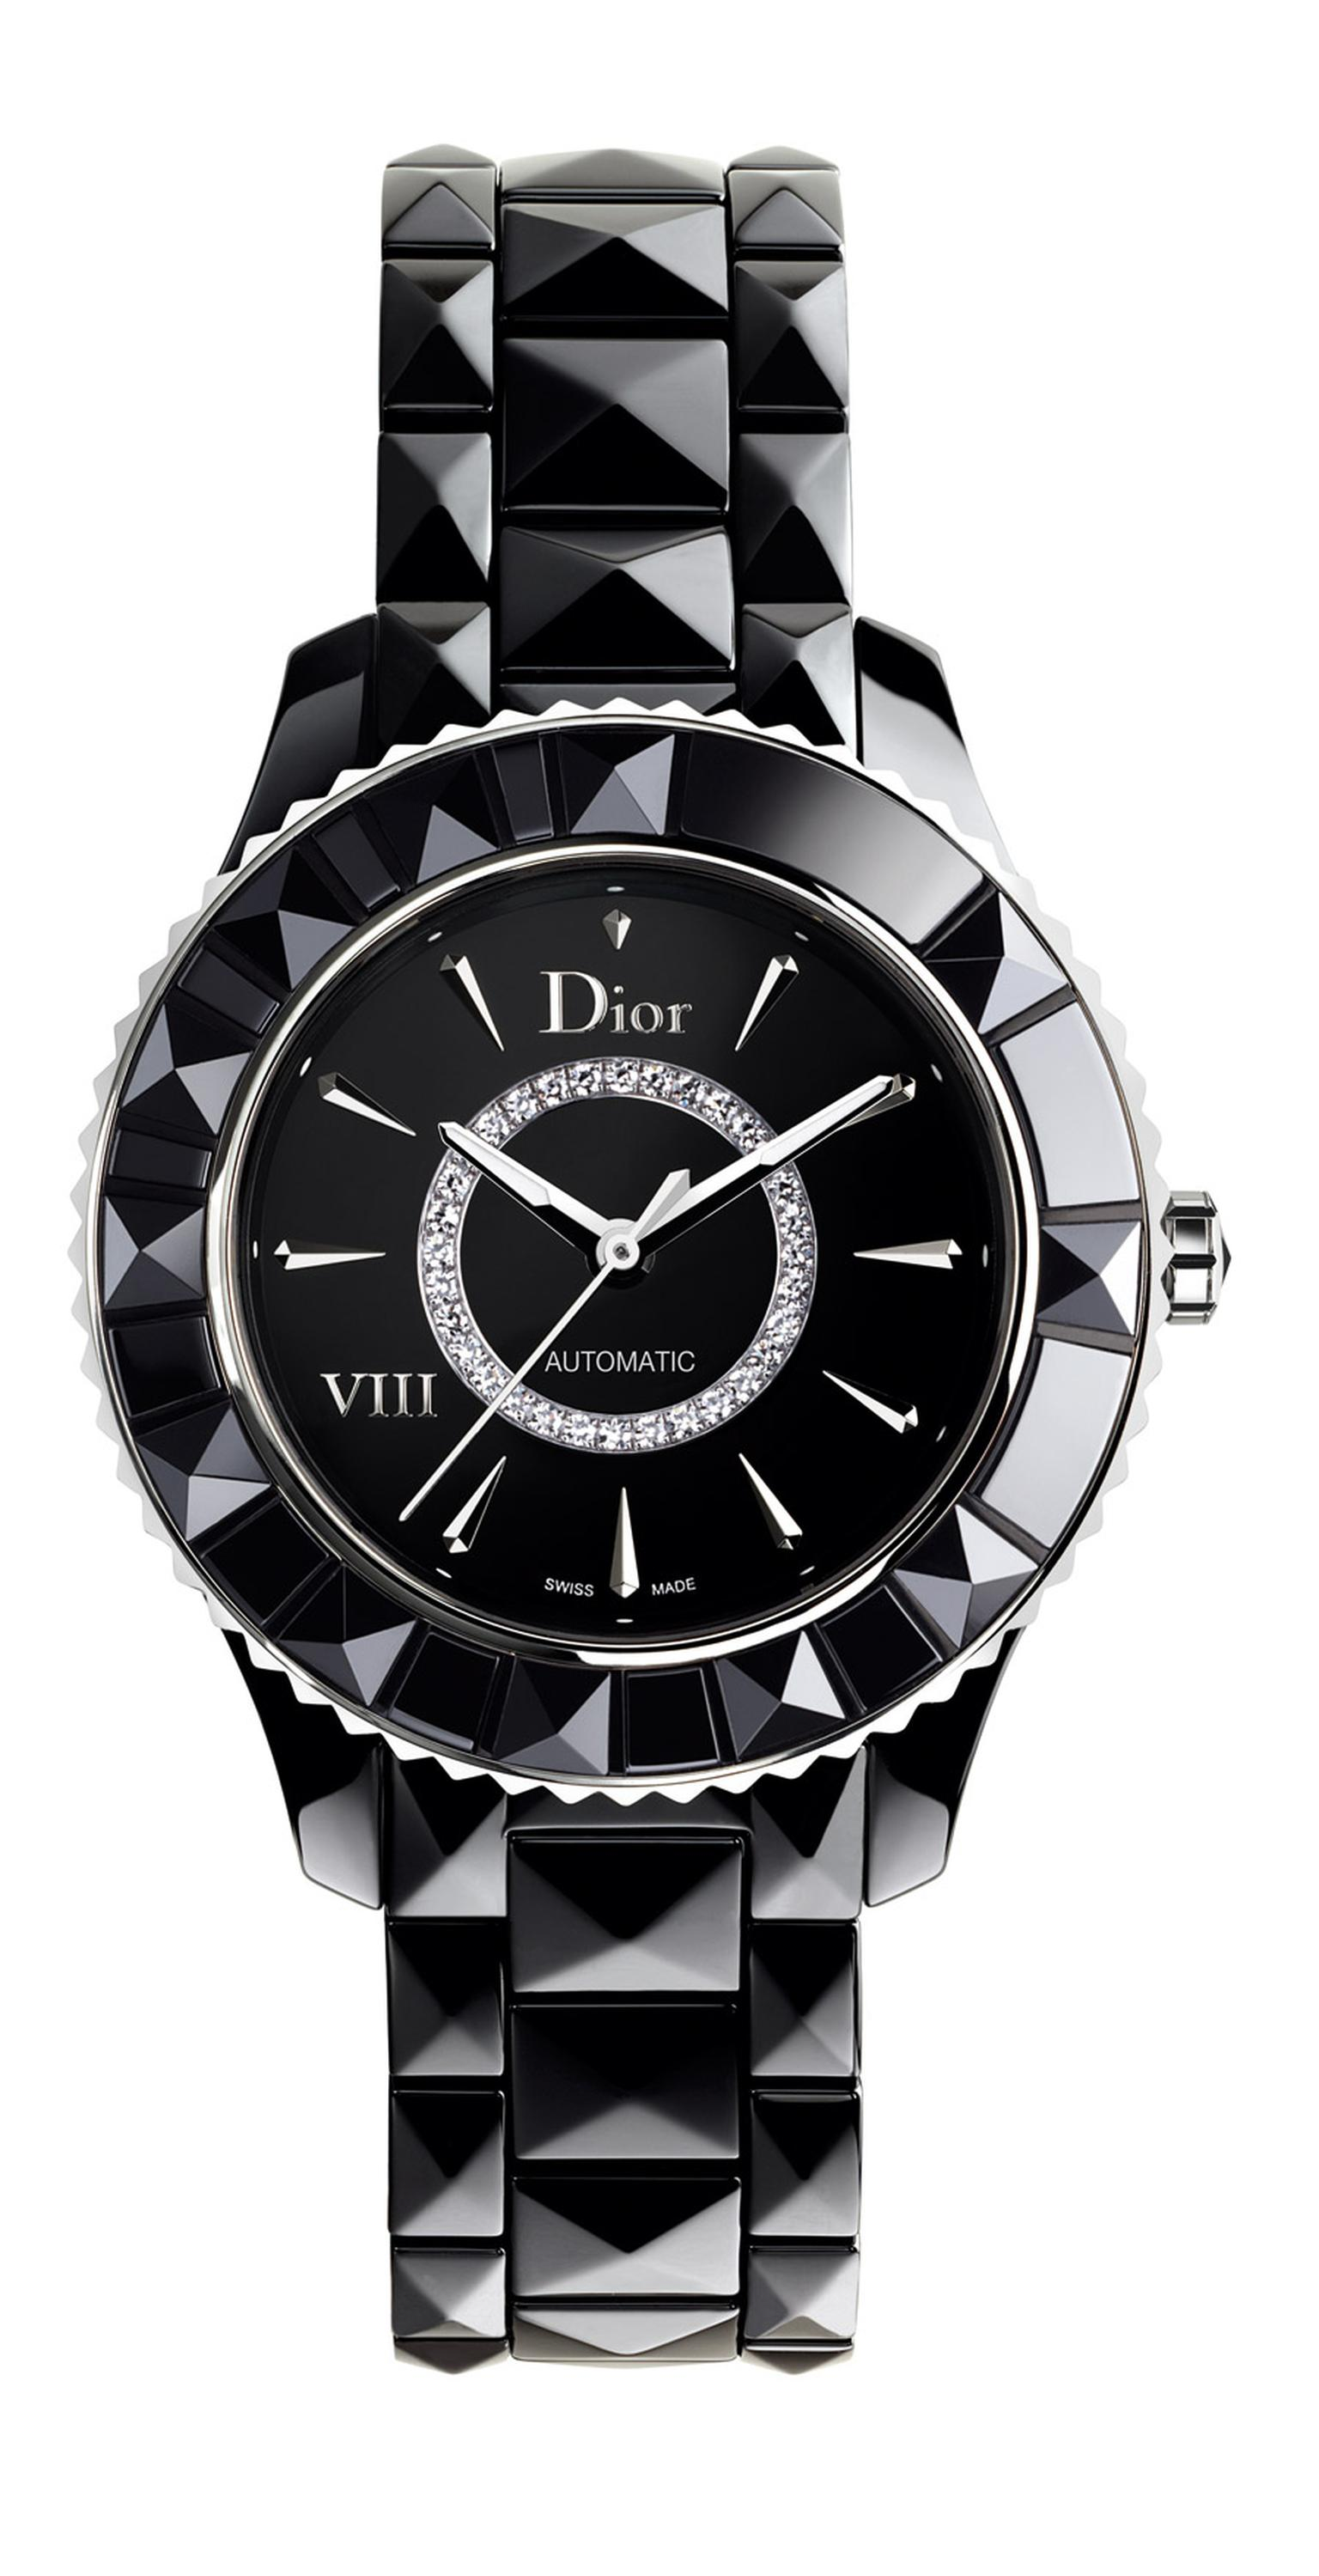 DIOR-VIII-BLACK-AUTO-DIAMOND-SET-DIAL-33mm.jpg